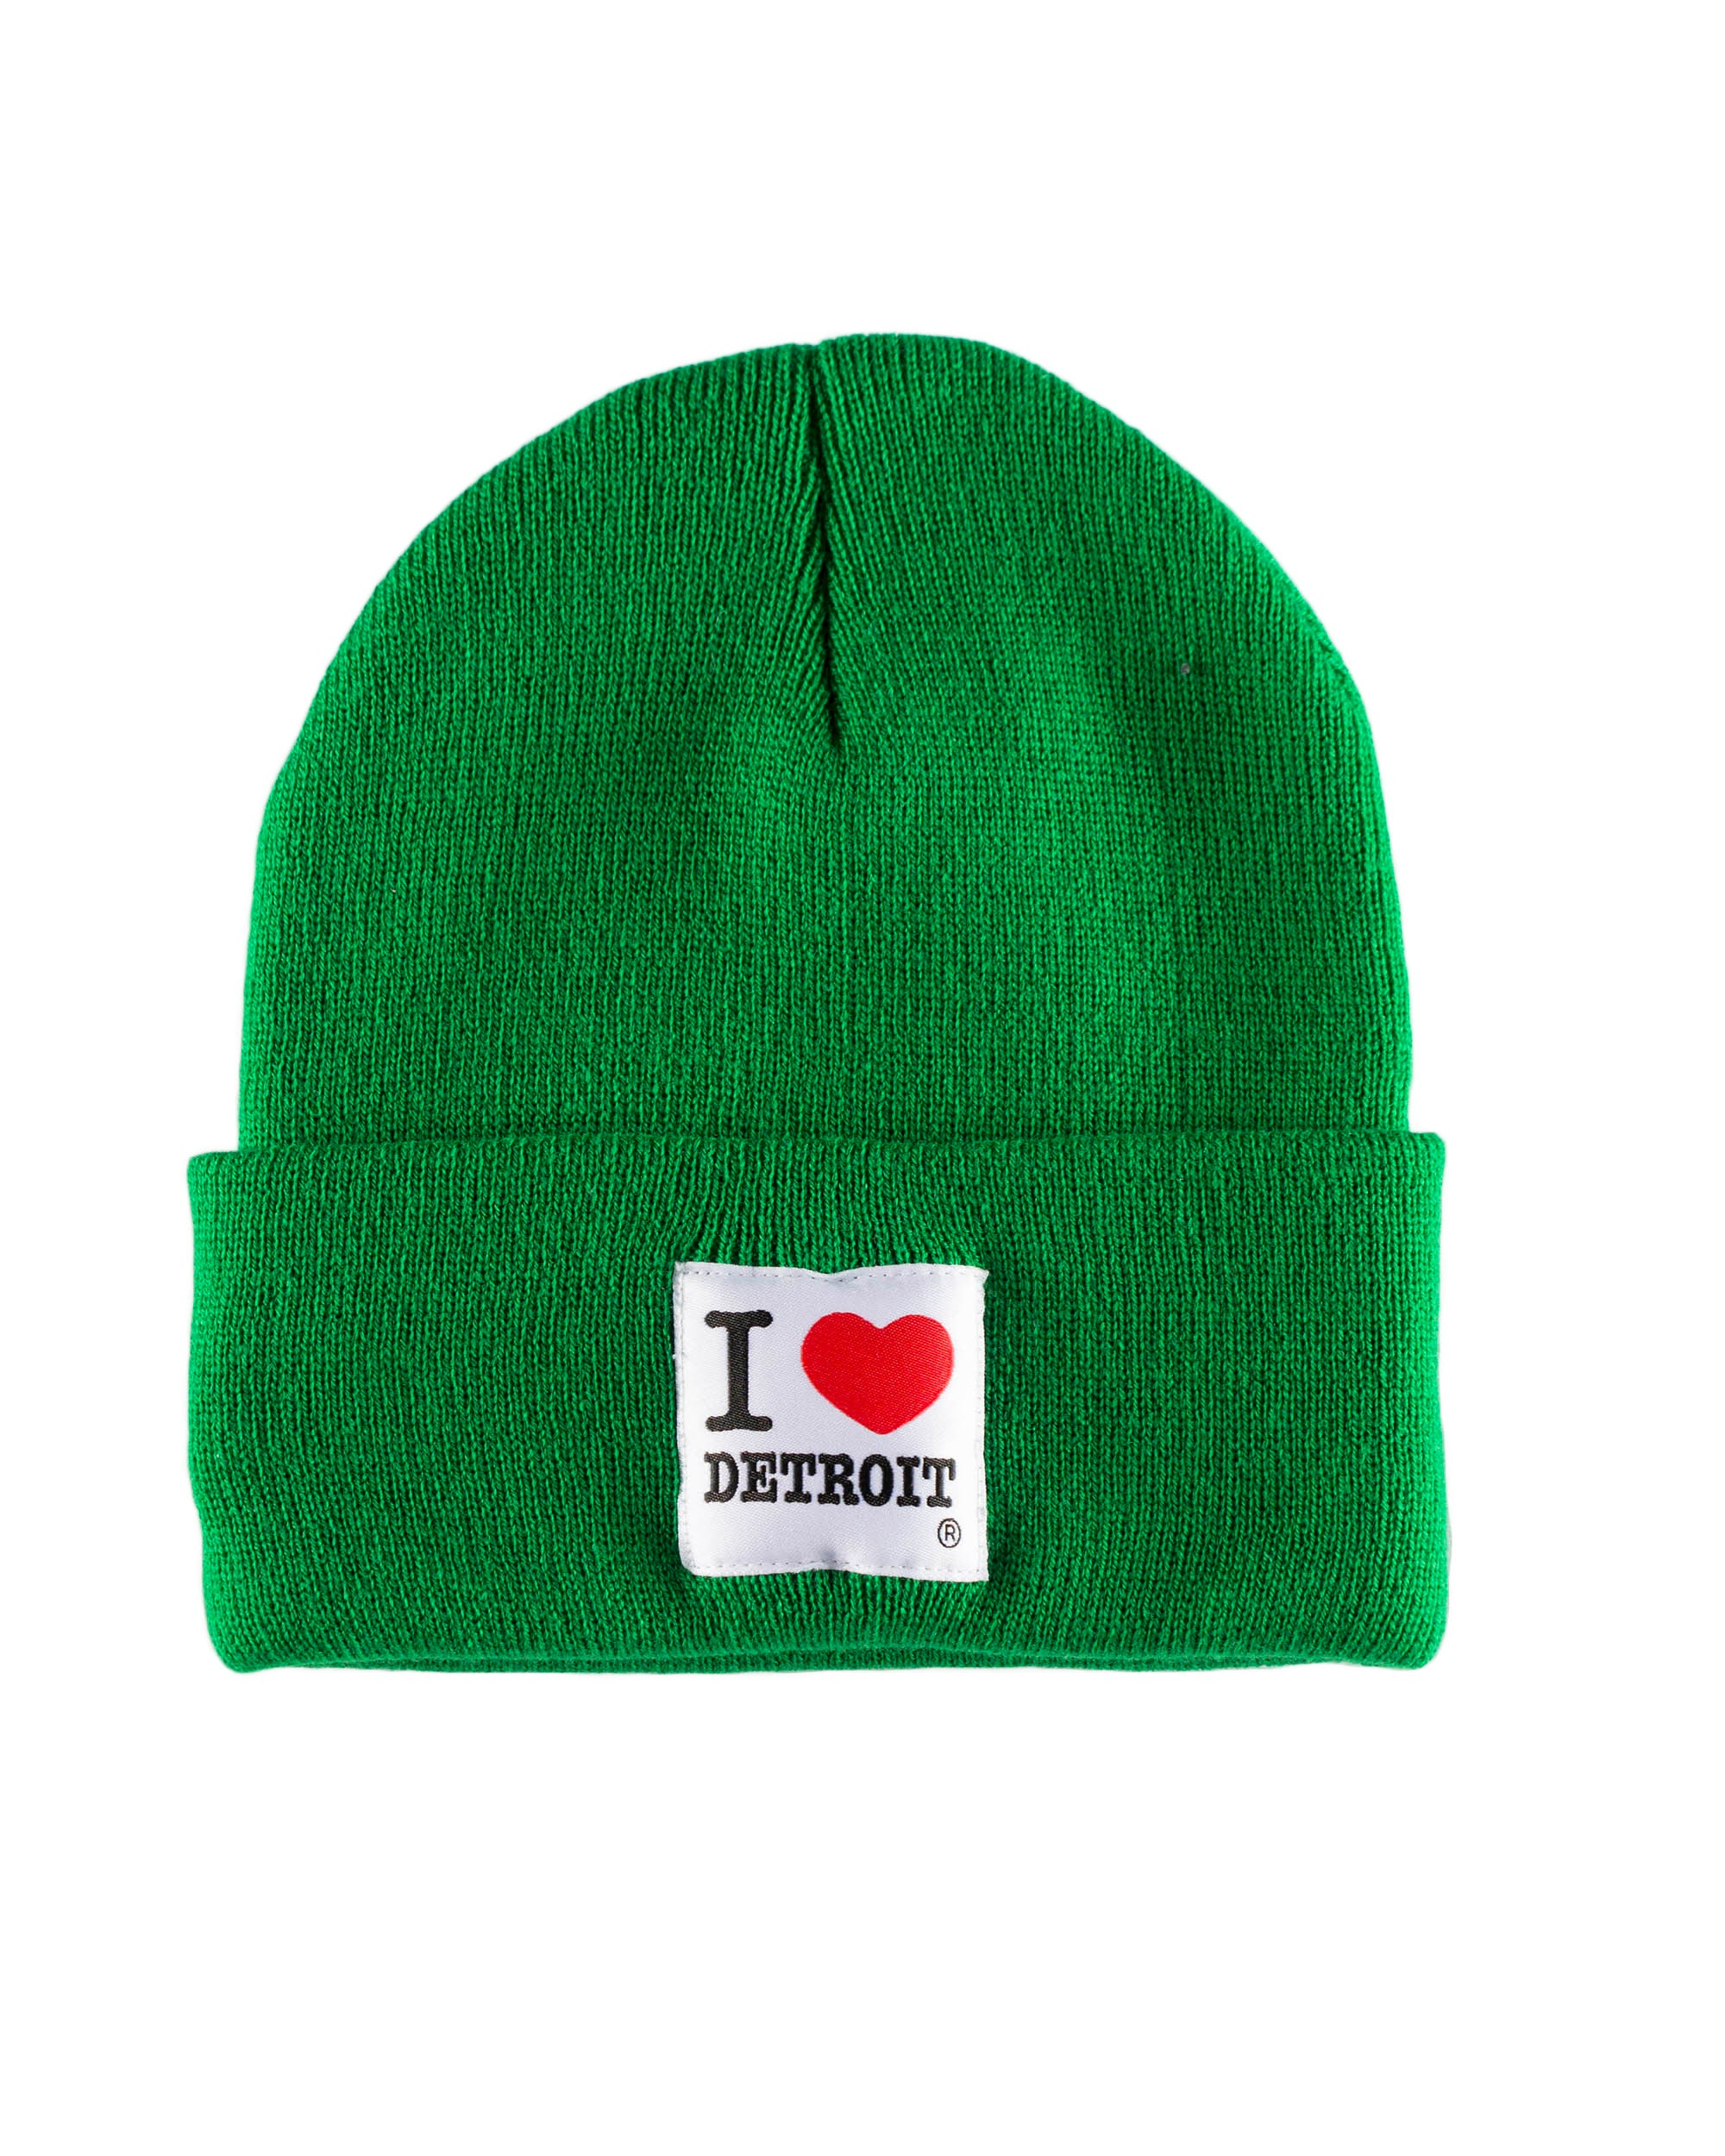 I Love Detroit - Green Knit Hat - The Great Lakes State ac2cb595d67